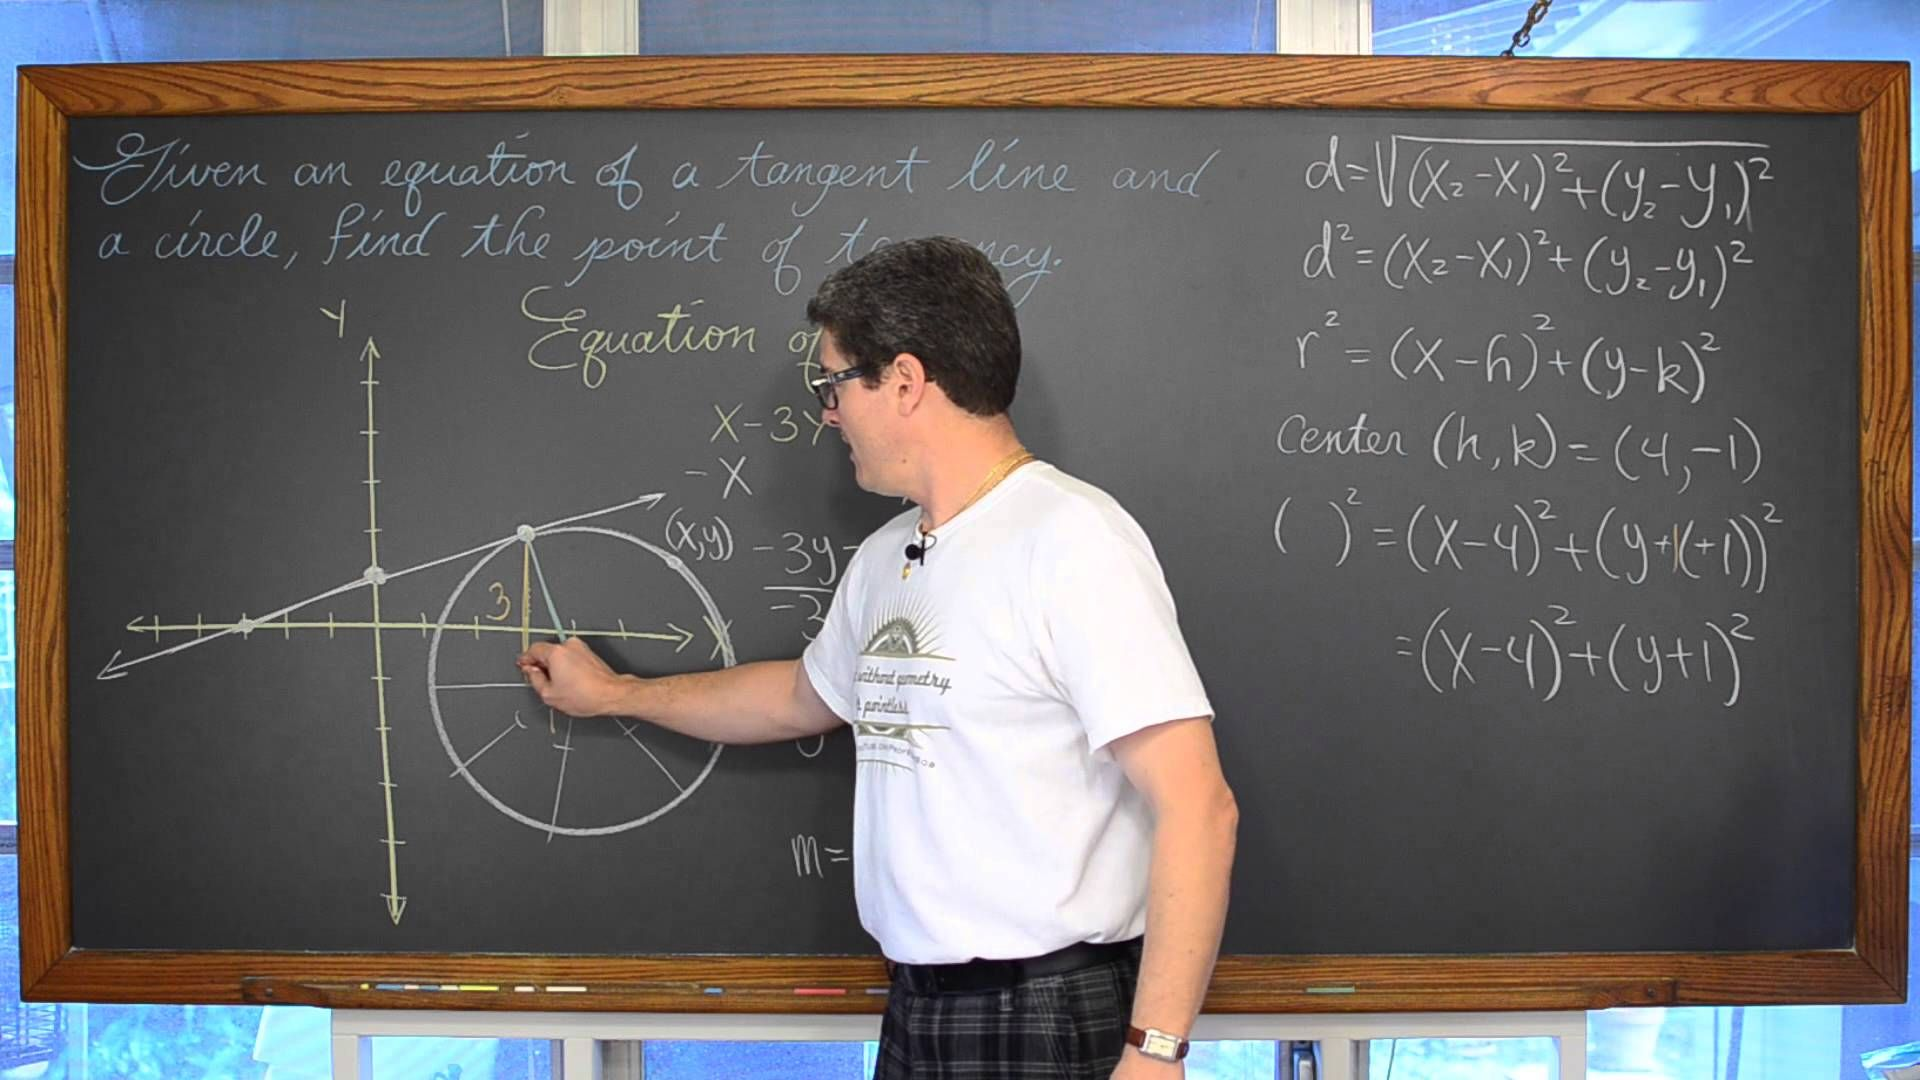 Given A Tangent Line Amp Circle Find The Point Of Tangency